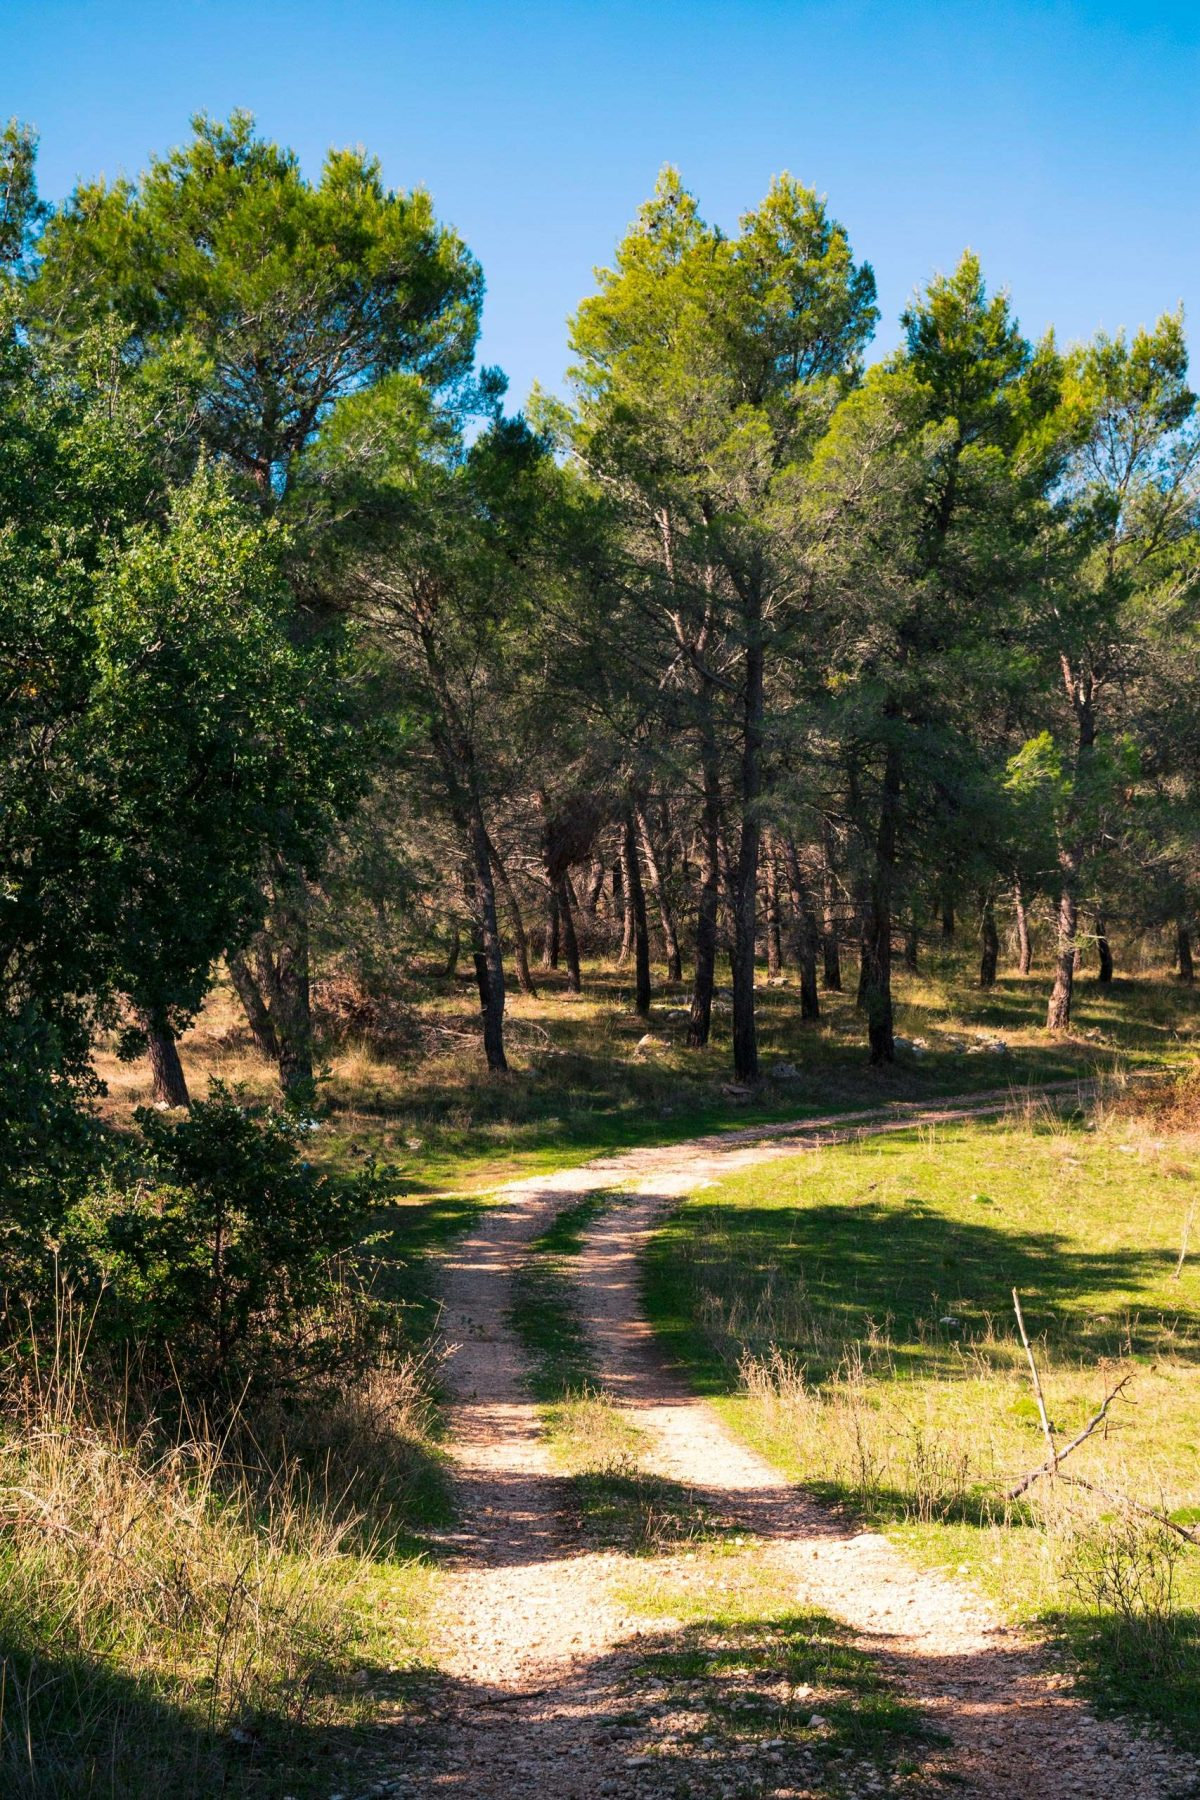 Mentecucco Wood in the area of National Park of Alta Murgia in Puglia